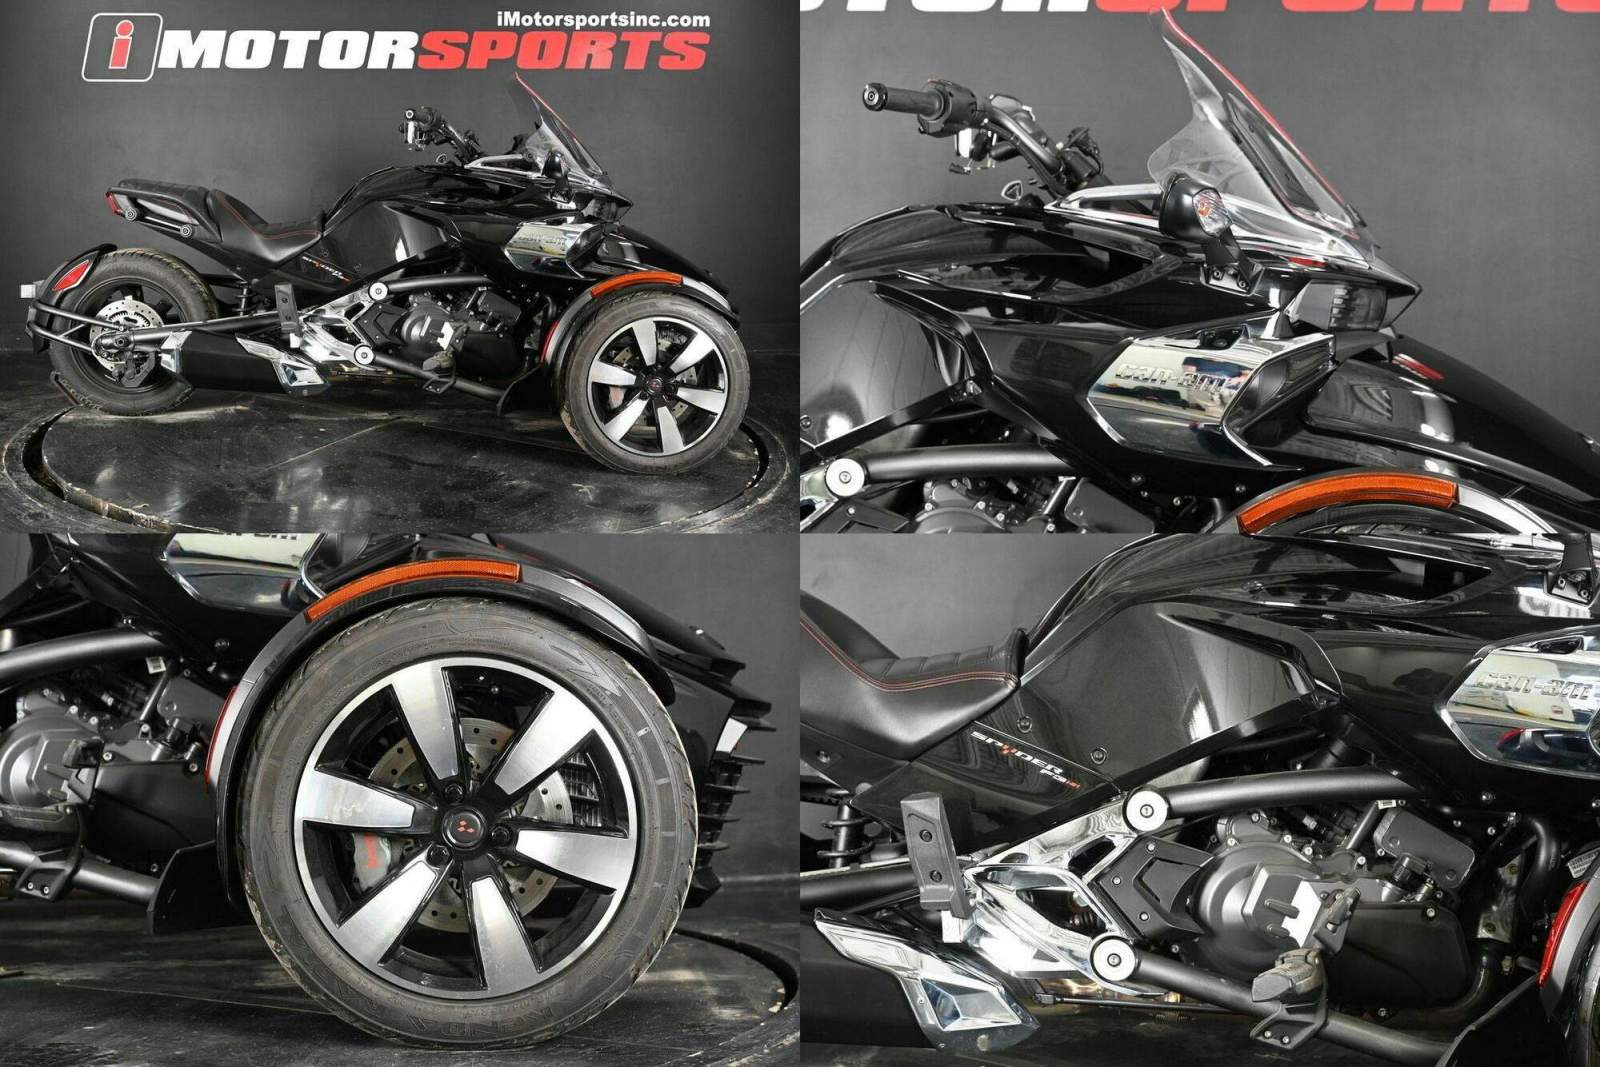 2015 Can-Am Spyder F3 S 6-Speed Semi-Automatic (SE6) Steel Bla Black used for sale craigslist